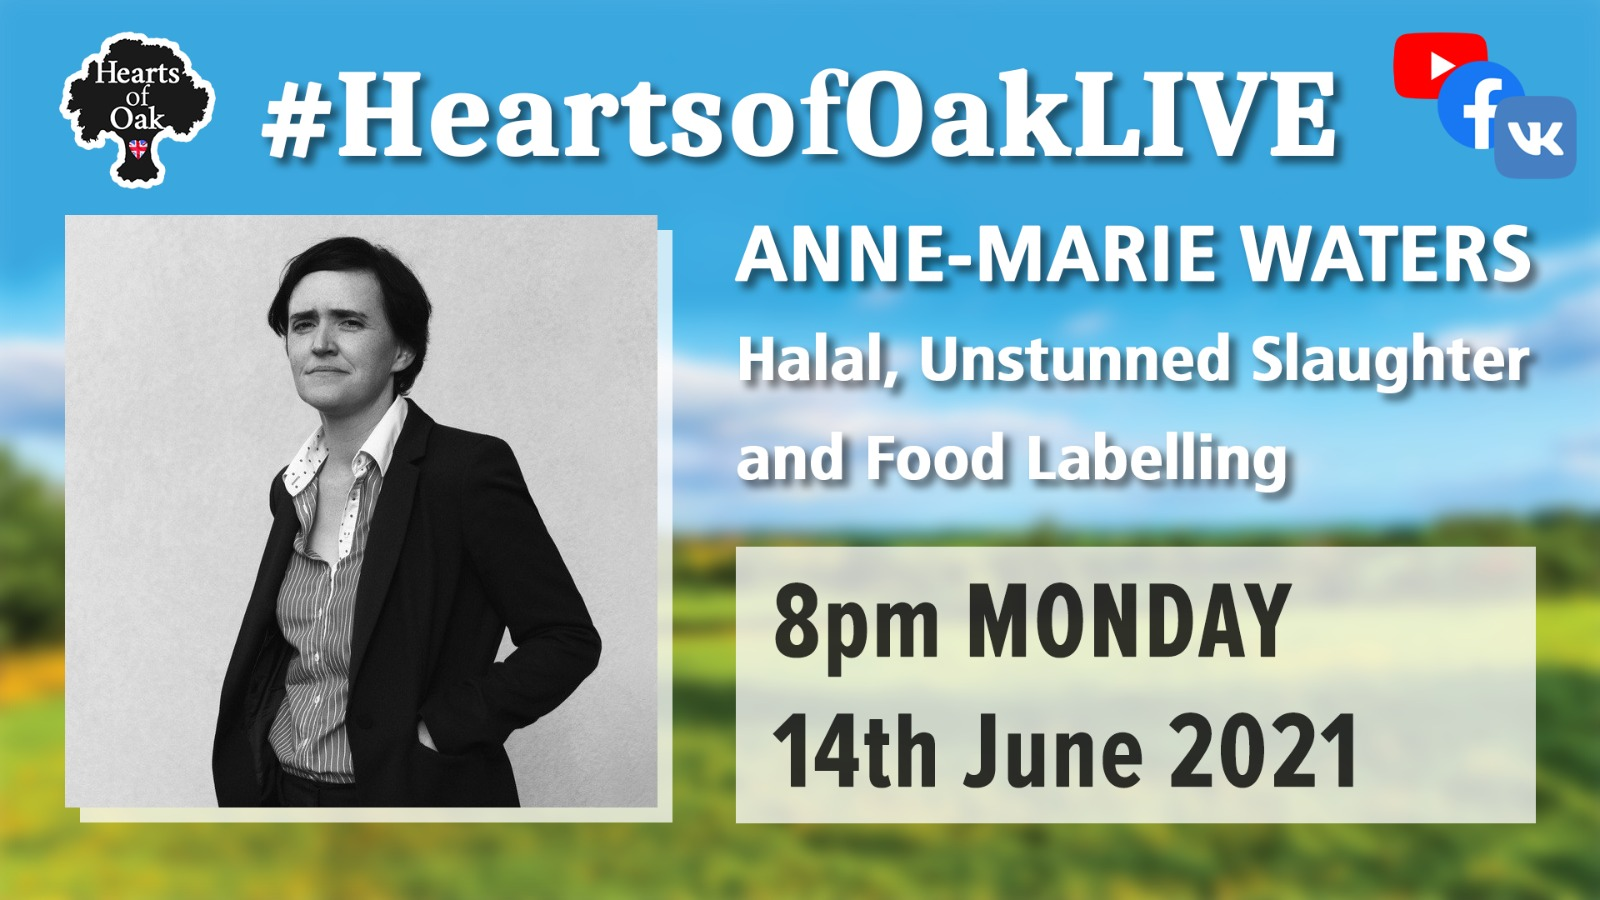 Anne-Marie Waters: Halal, Unstunned Slaughter and Food Labelling